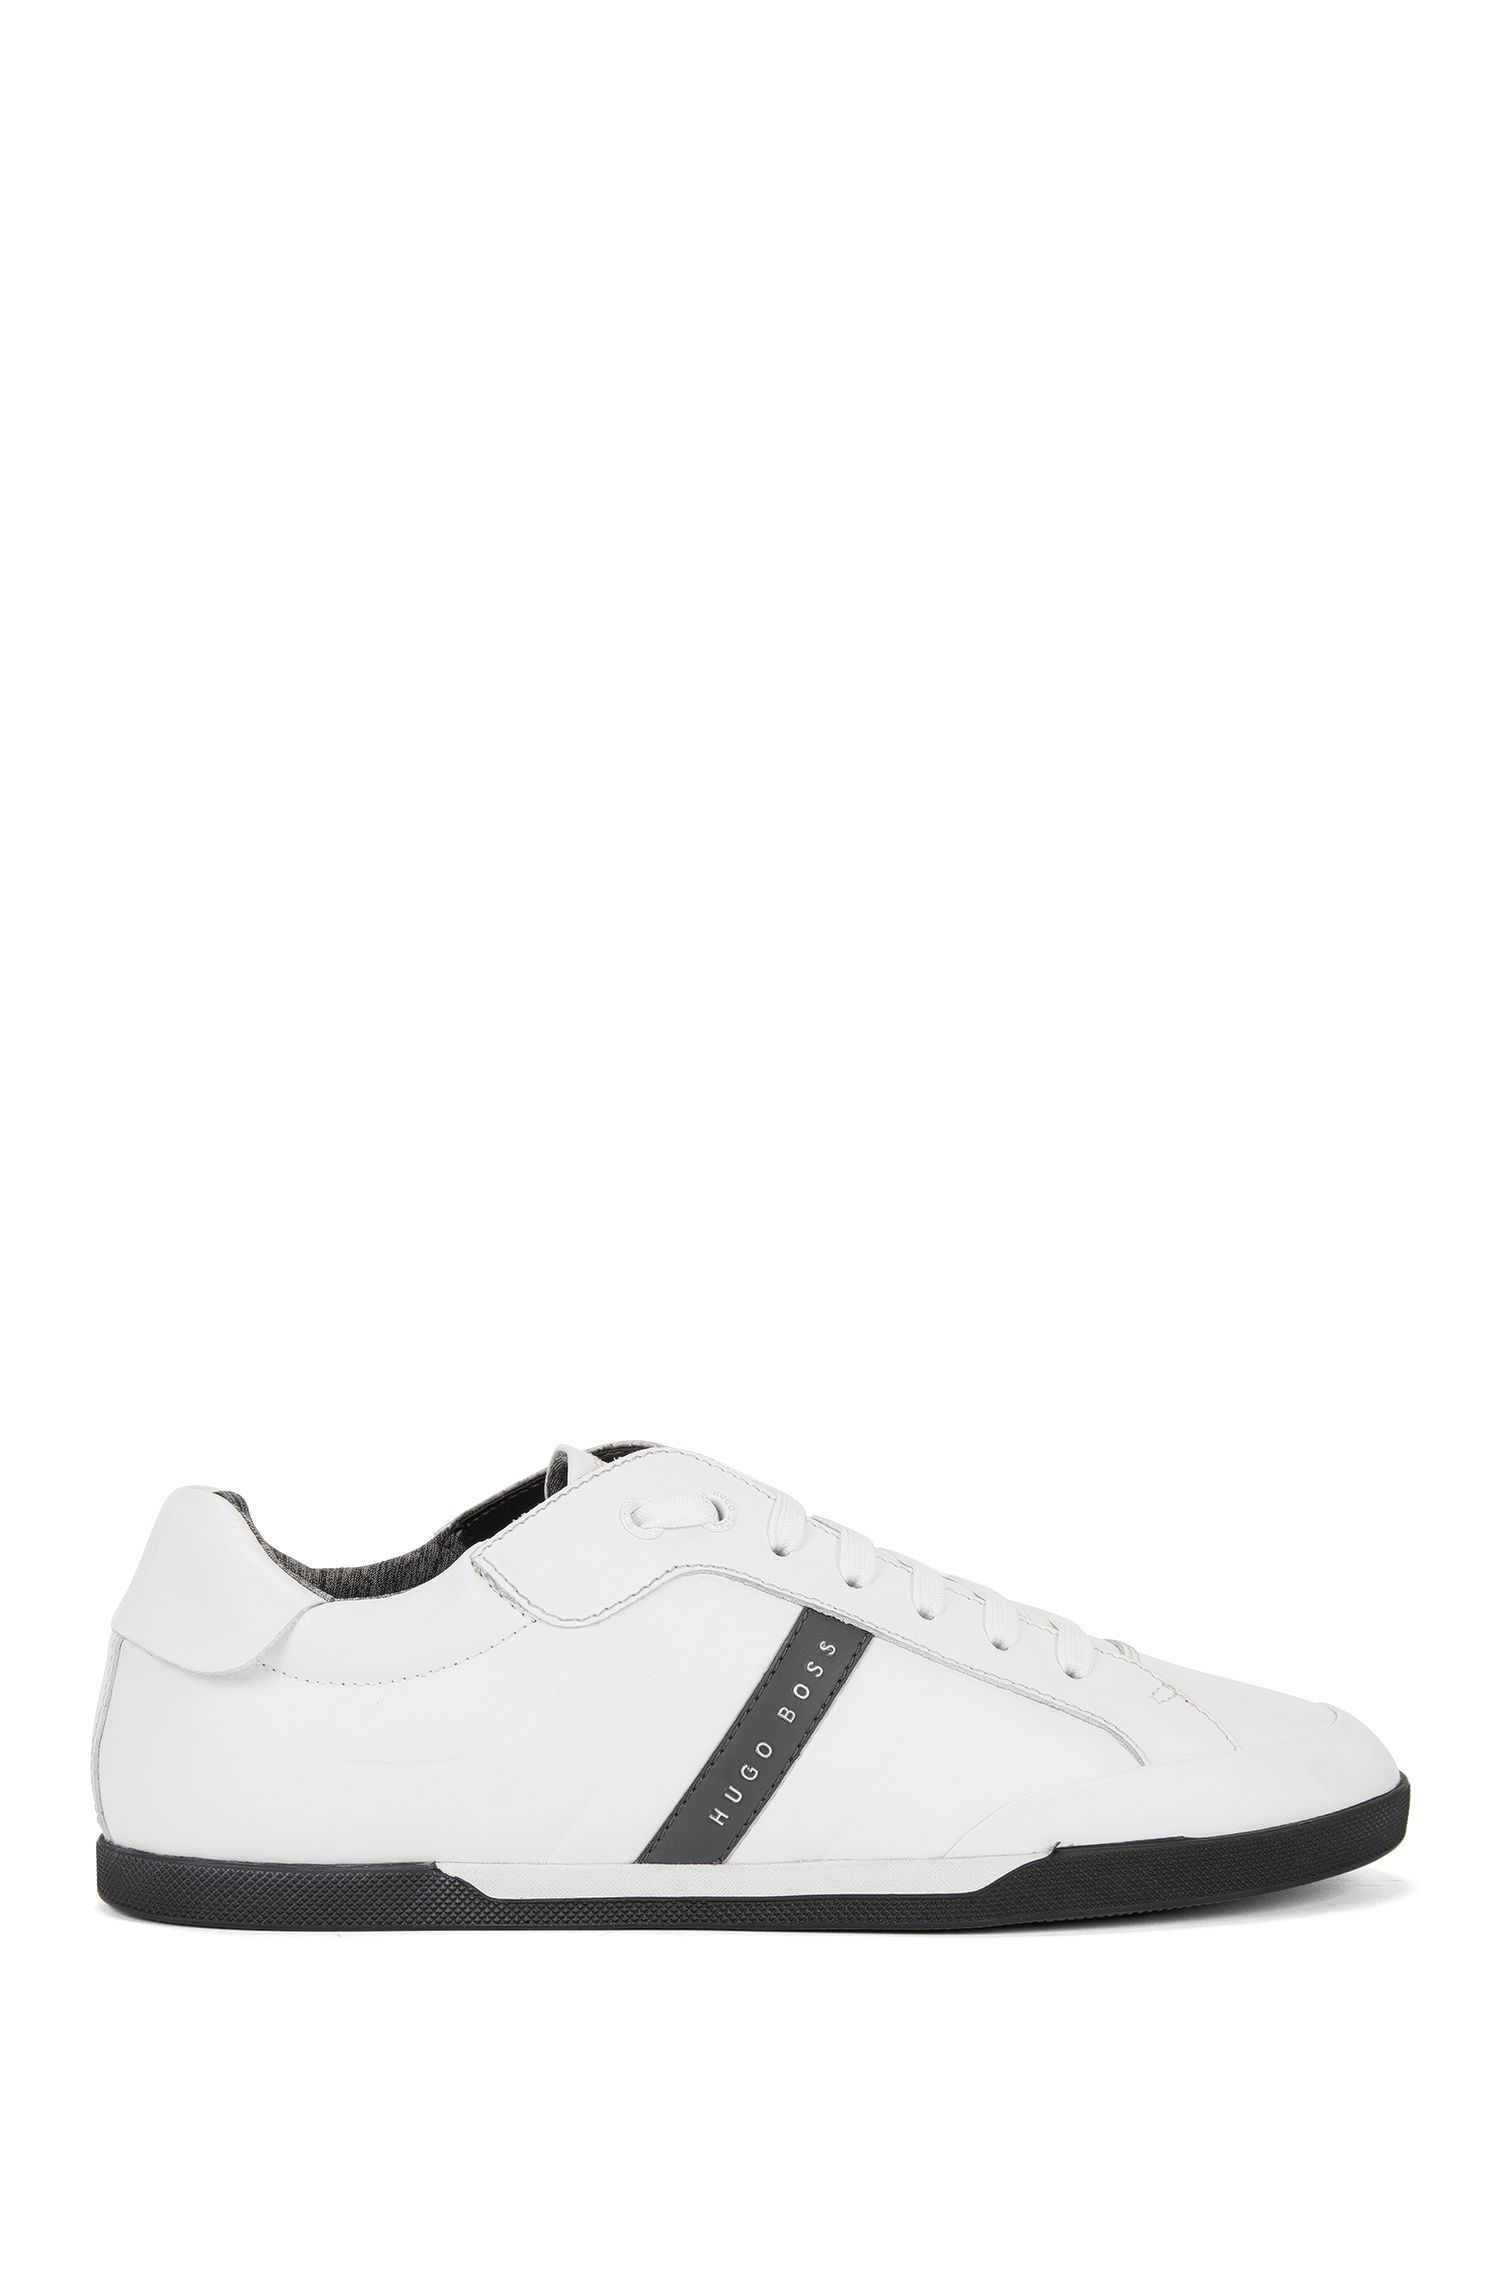 Low-top trainers in debossed leather